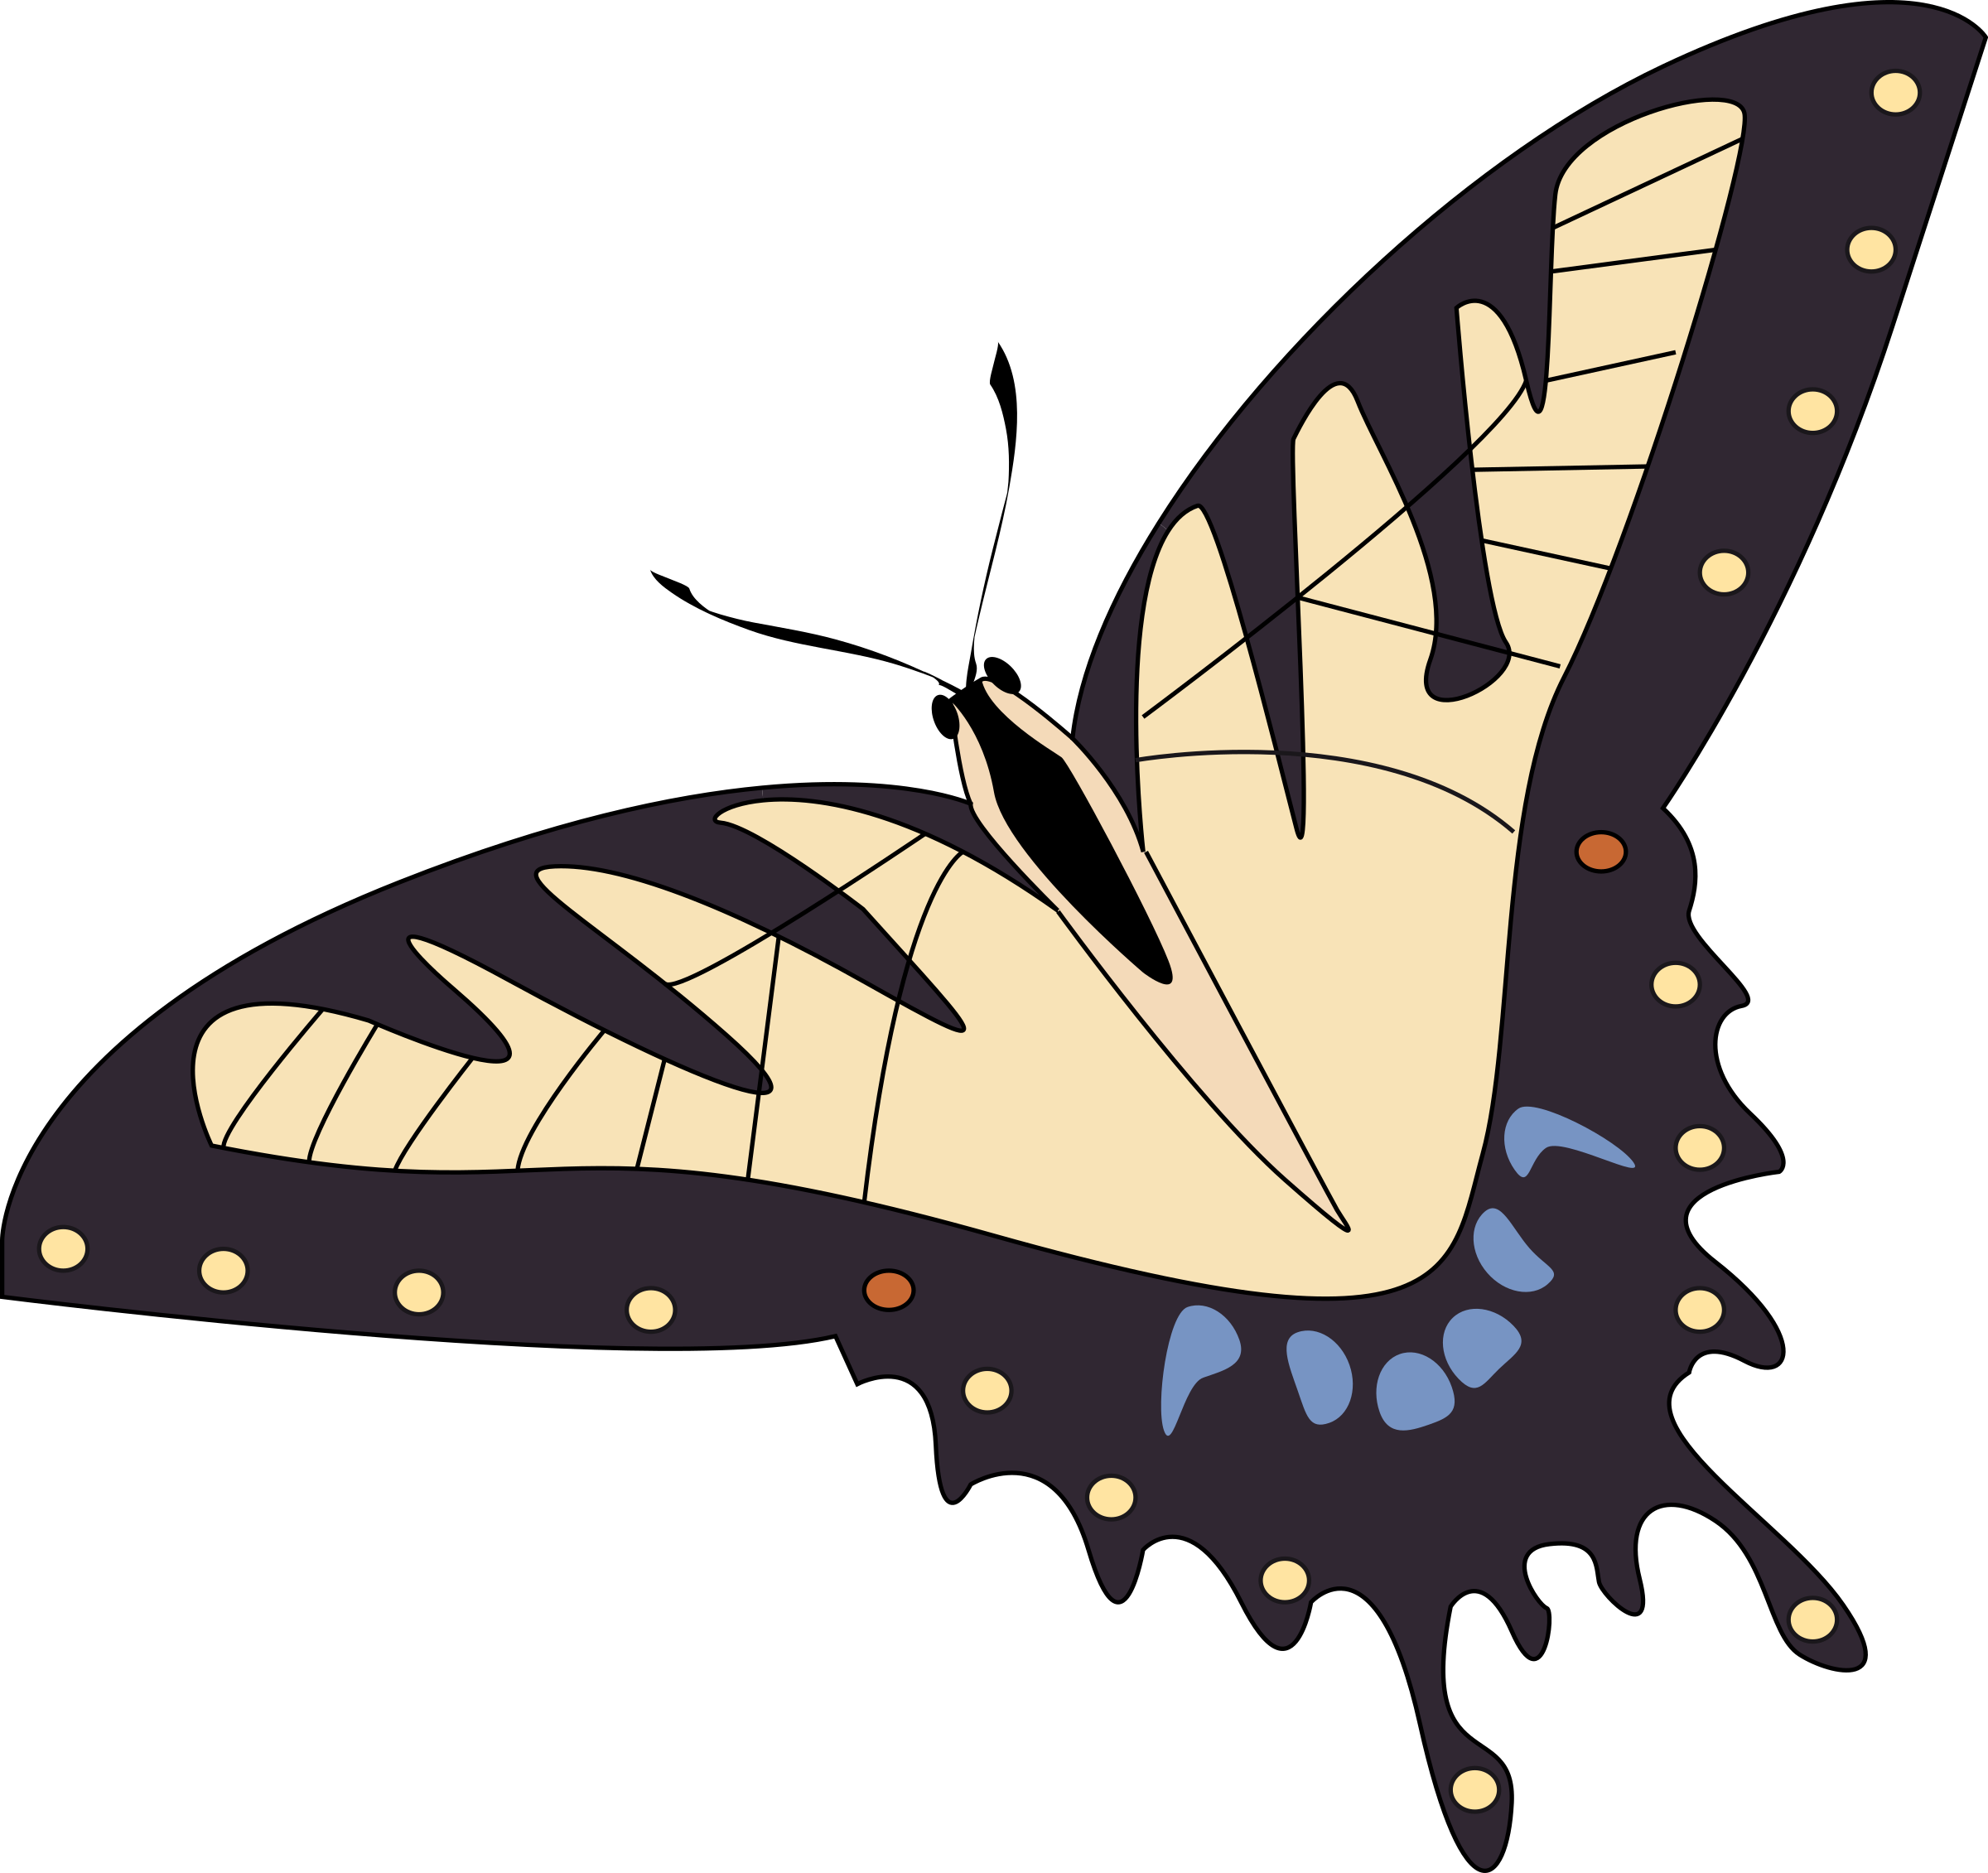 Papillon clipart #1, Download drawings